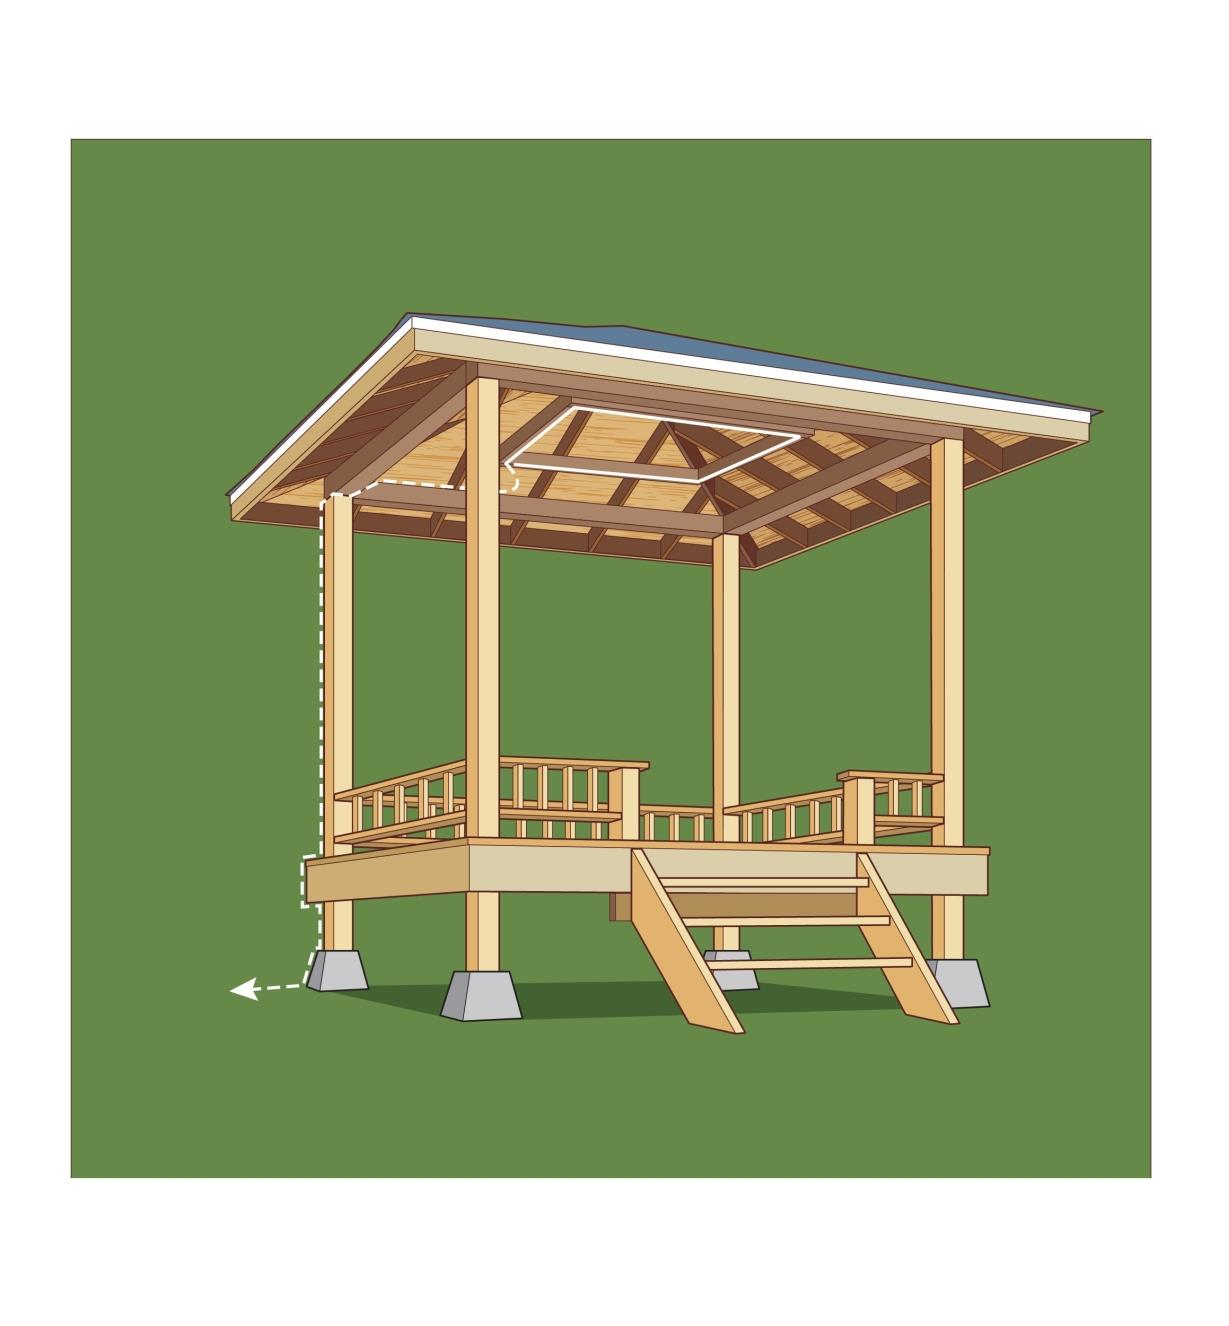 Illustration of LED tape lights installed in a gazebo